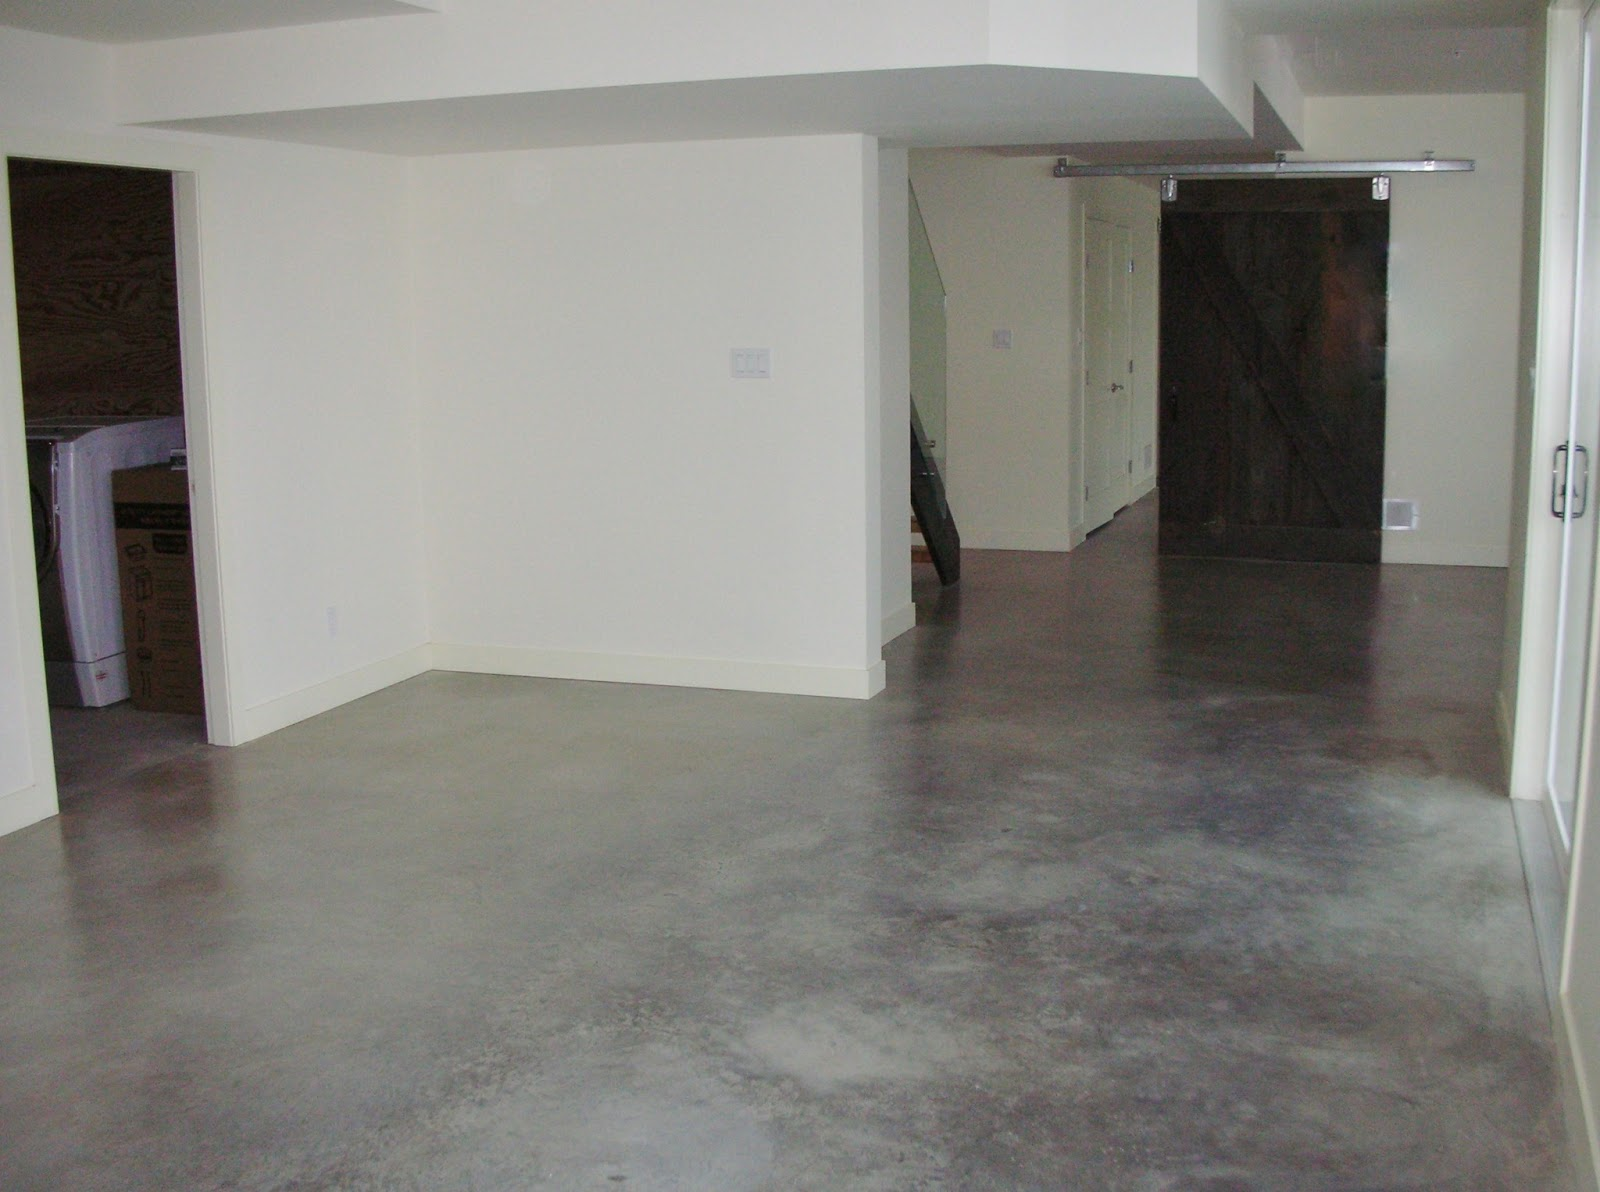 Comconcrete Floor Alternatives : ... Is Known To Be One Of The Best Alternatives To Finish Concrete Floors